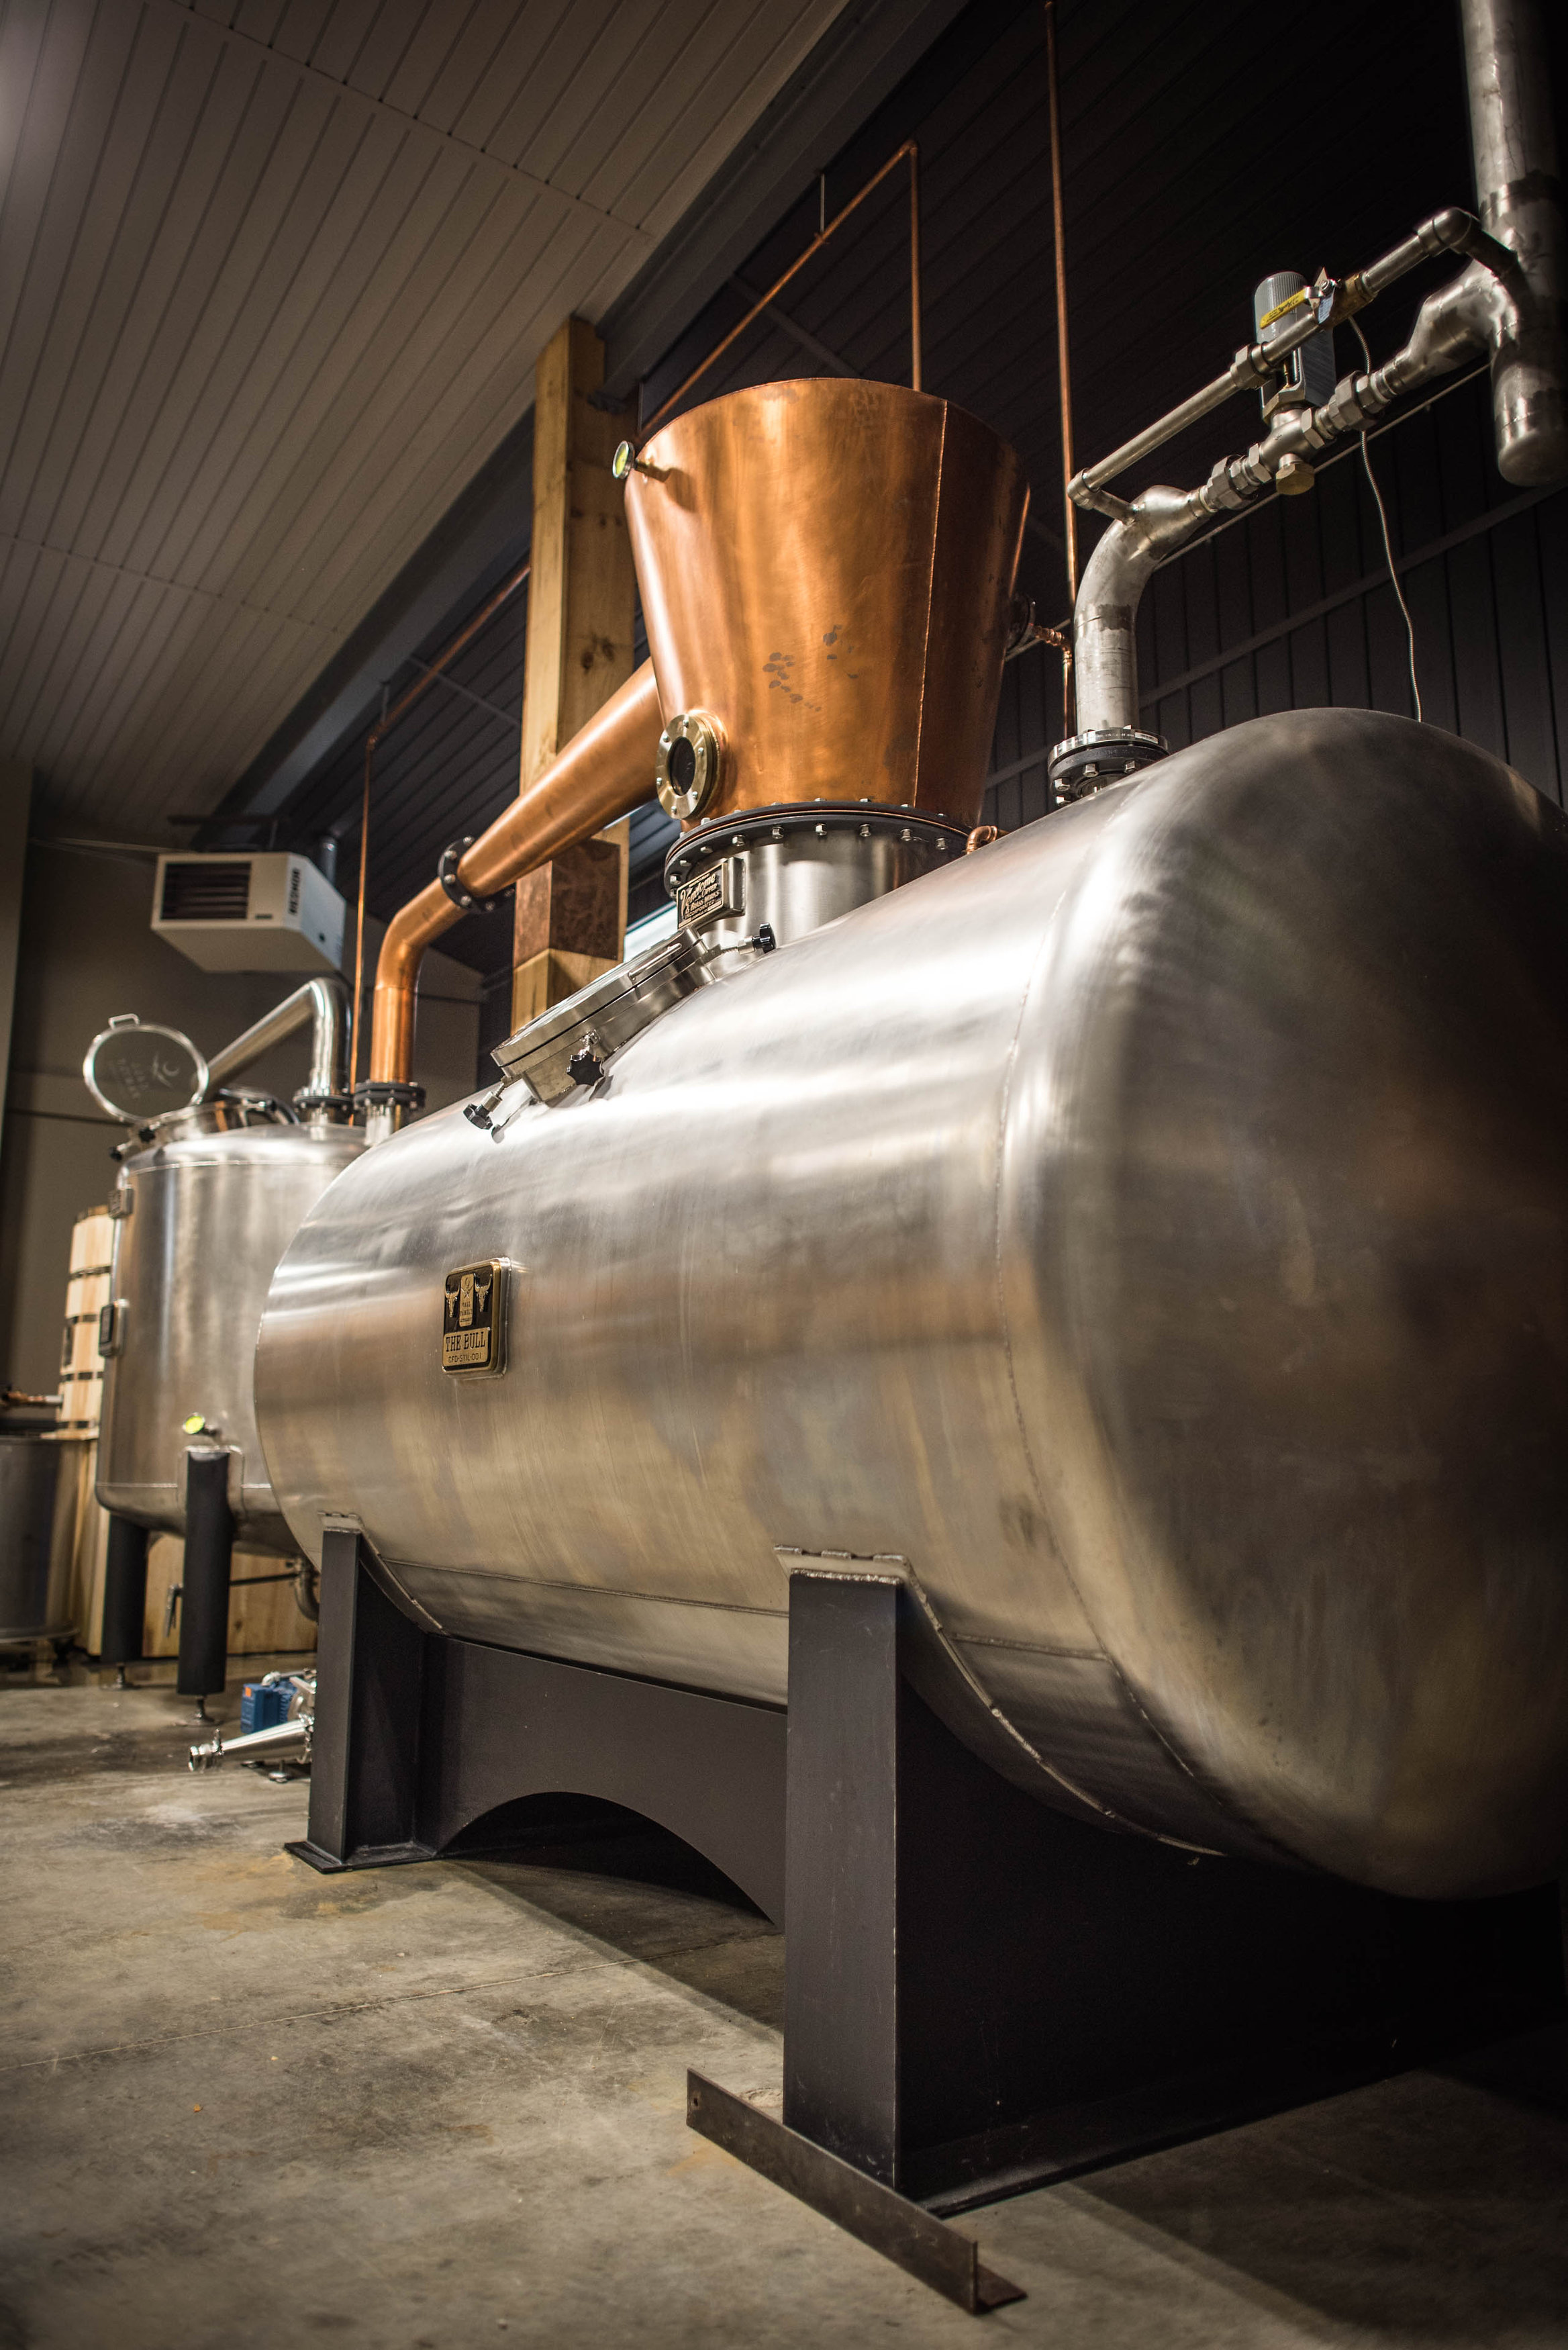 """""""The Bull"""" - Our custom designed 2100 gallon direct steam injection still. Designed by master distiller, Brian Call - it is the largest direct steam injection still in North Carolina. Built in 2015 by  Vendome Copper & Brass Works."""